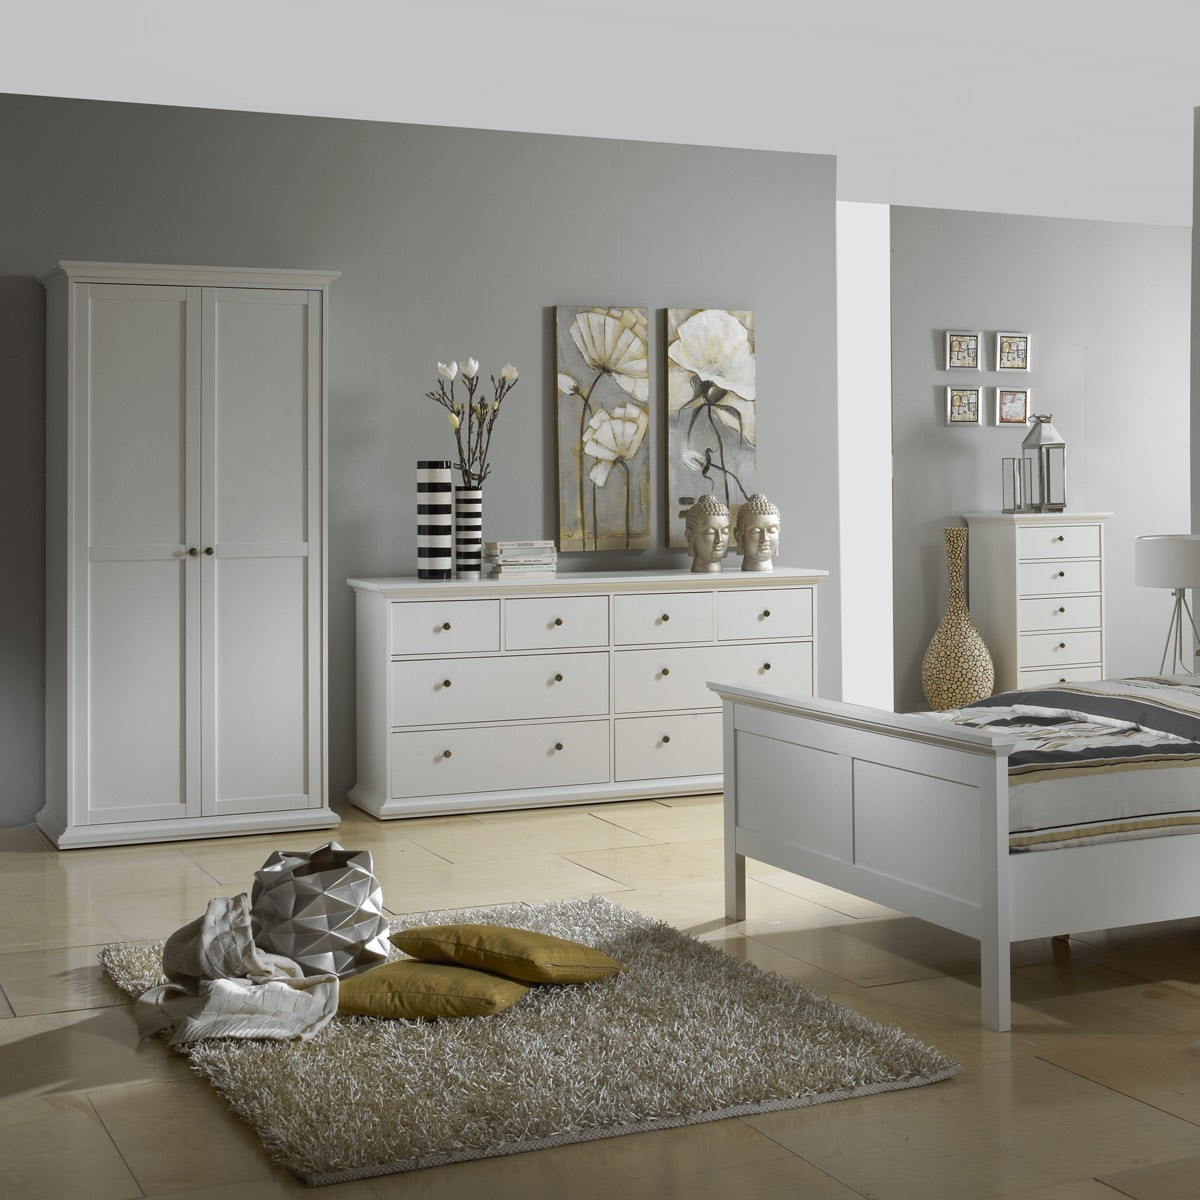 kleiderschrank schrank schlafzimmer venedig in wei. Black Bedroom Furniture Sets. Home Design Ideas